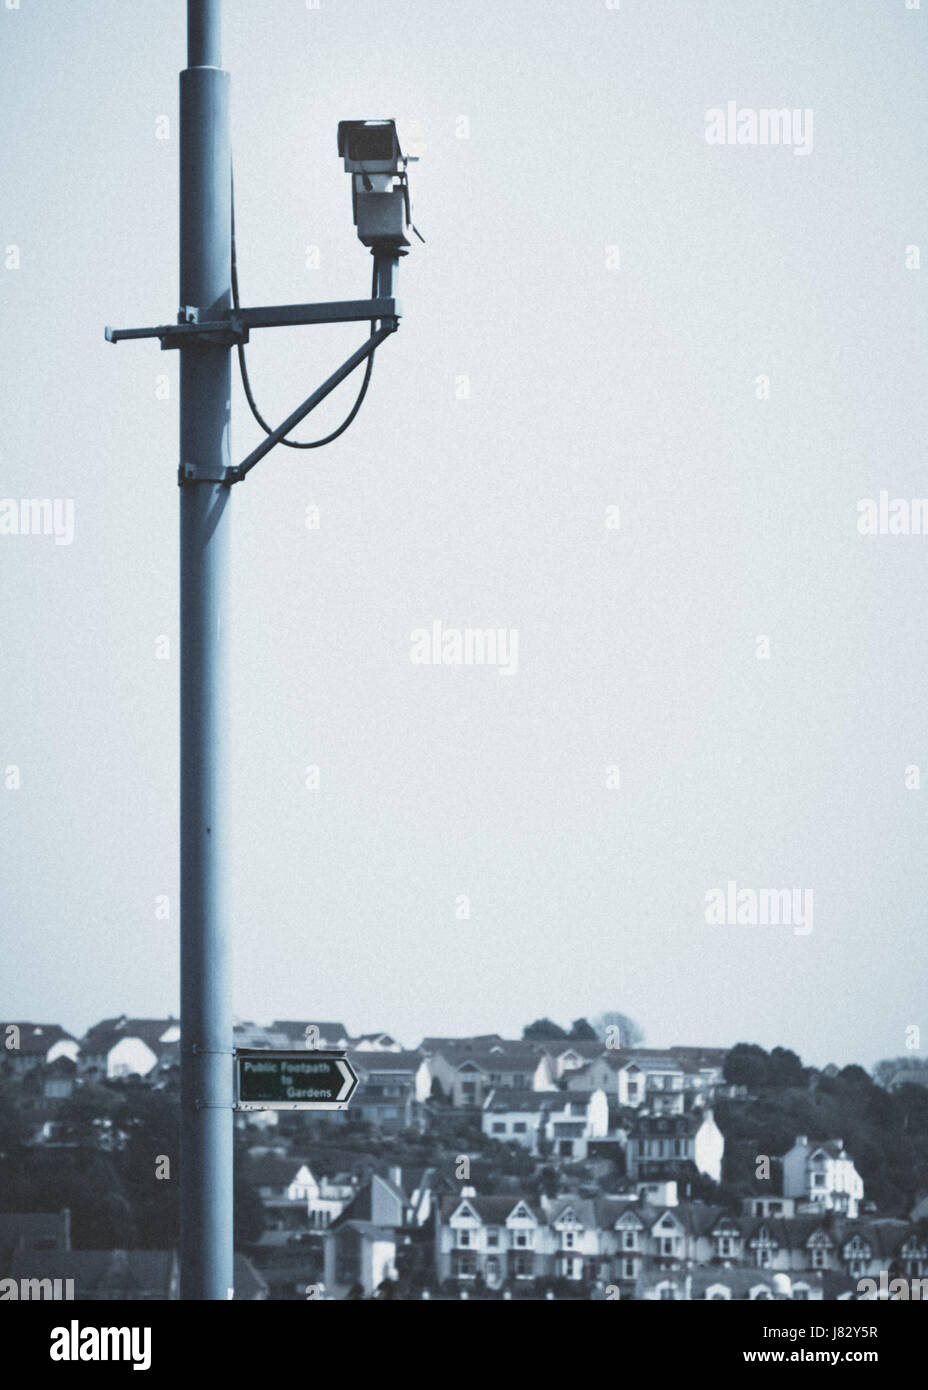 Video surveillance camera overlooking the houses and harbour in Brixham, Devon. Stock Photo